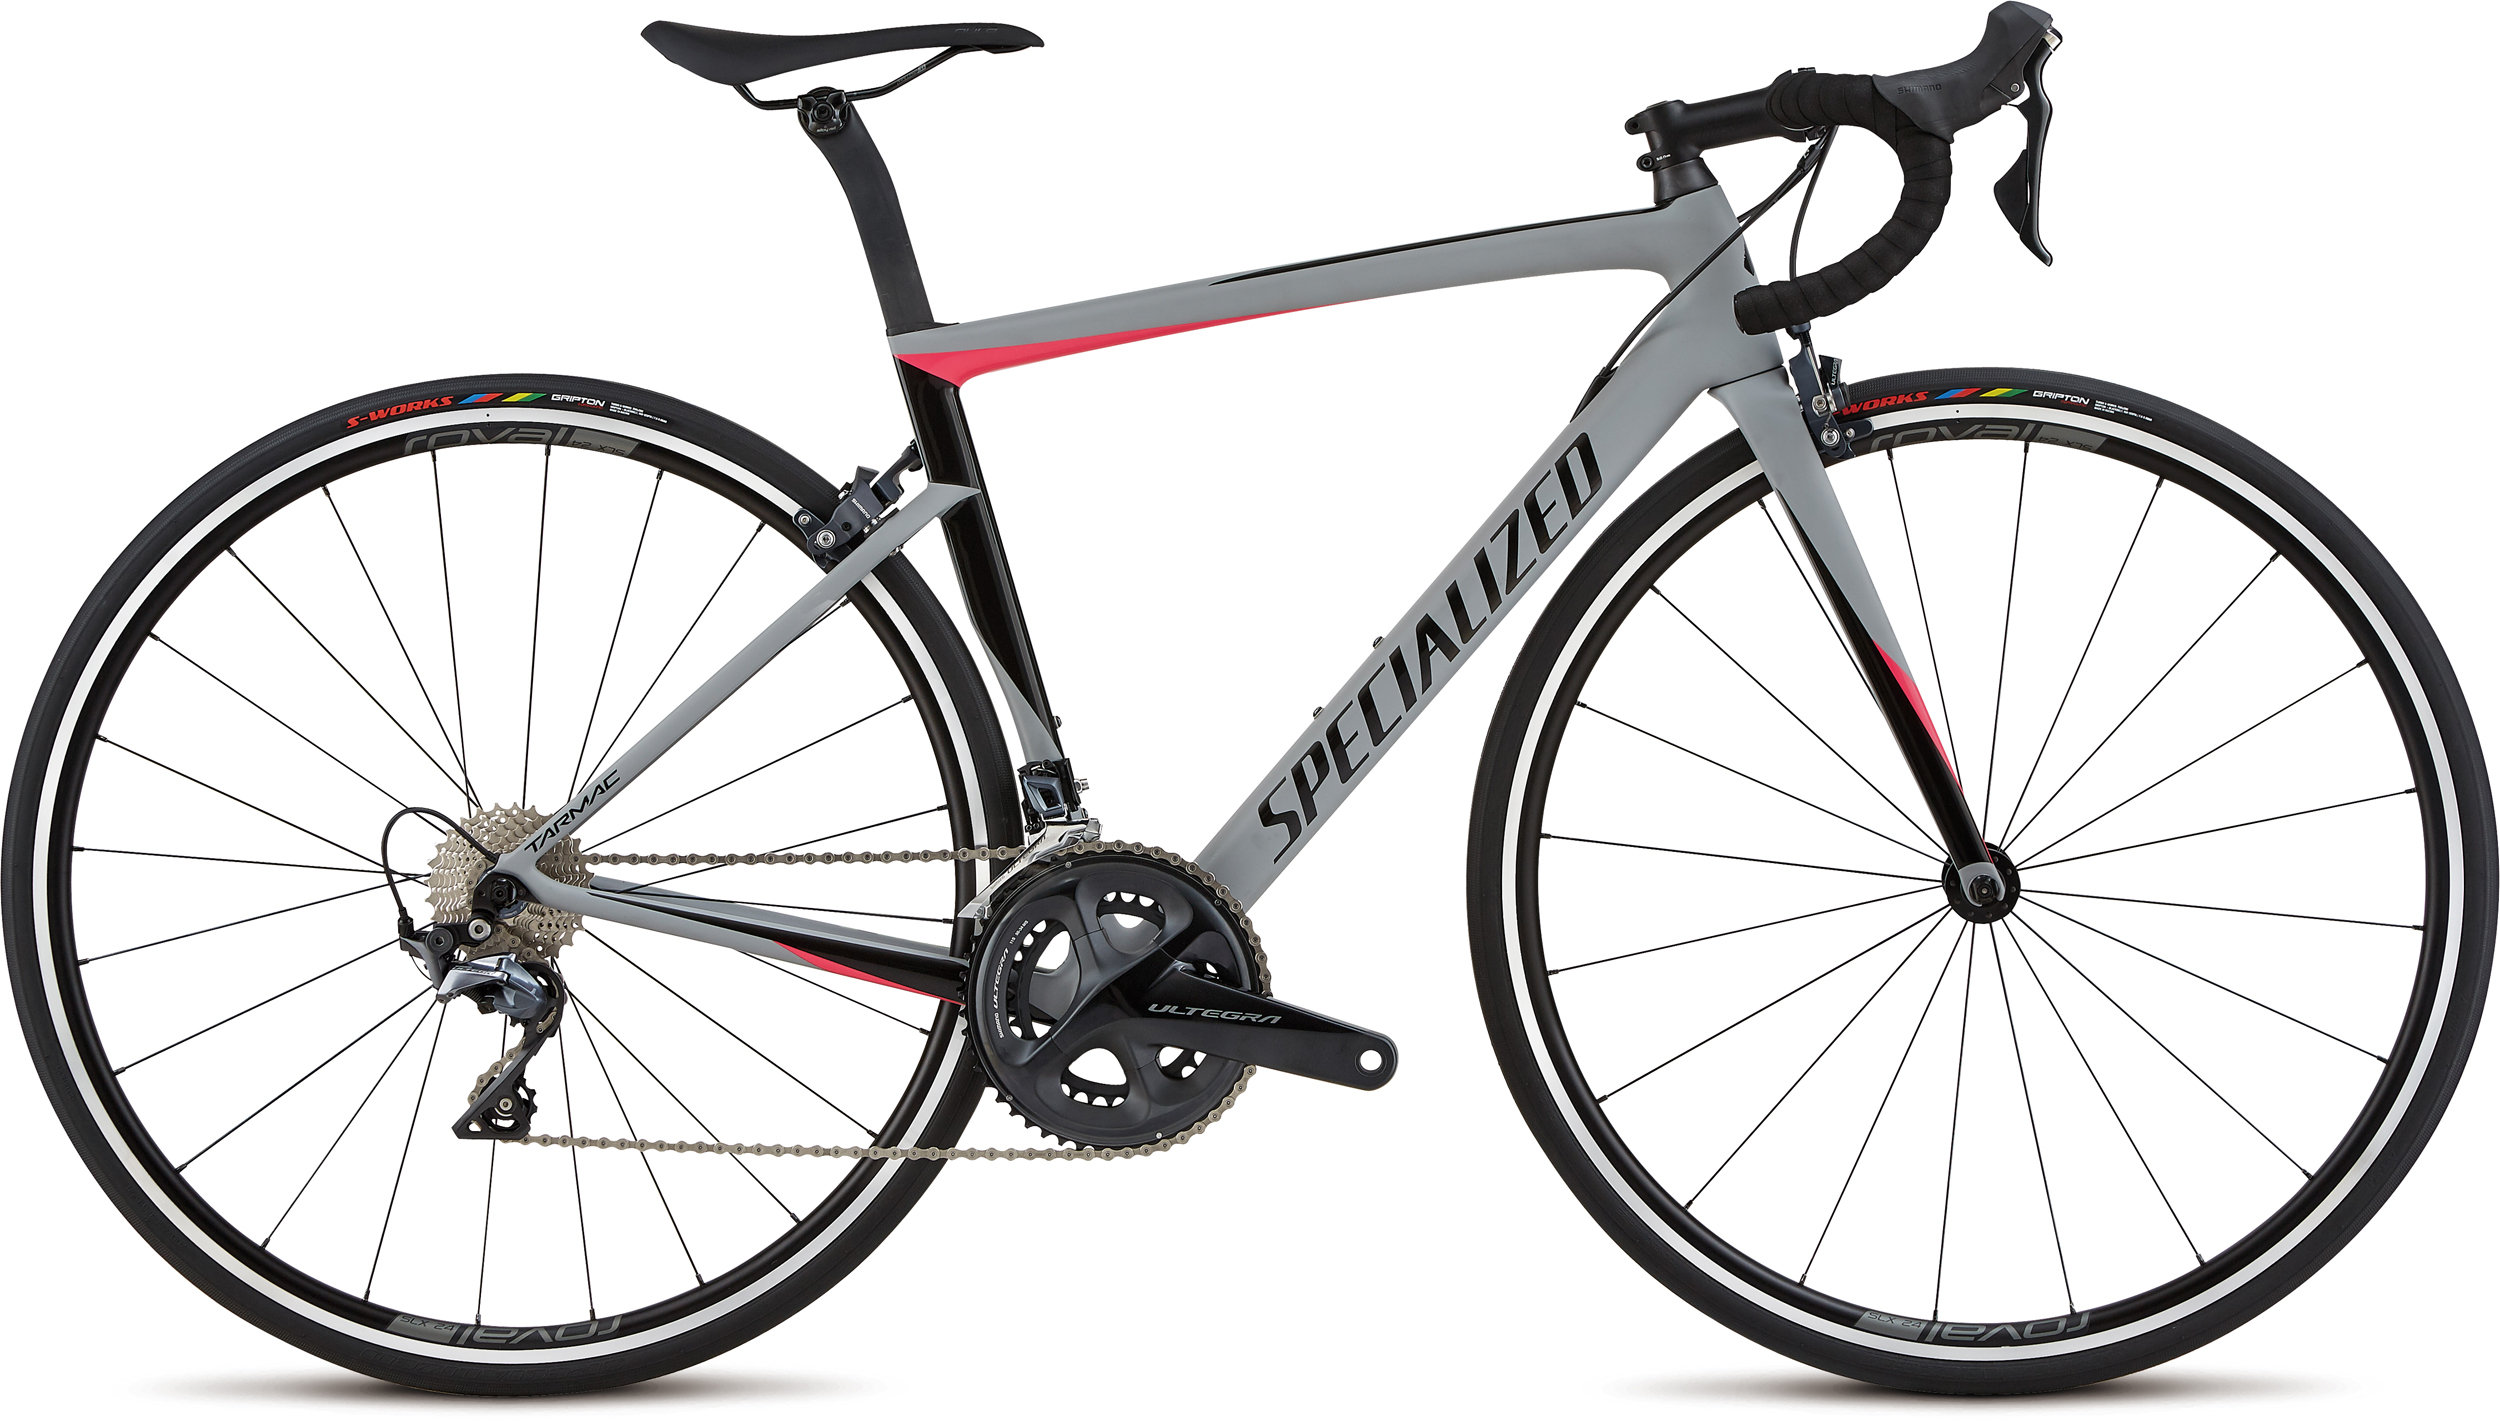 Specialized Women´s Tarmac Expert Satin / Gloss / Cool Gray /  Acid Pink / Black 52 - Alpha Bikes